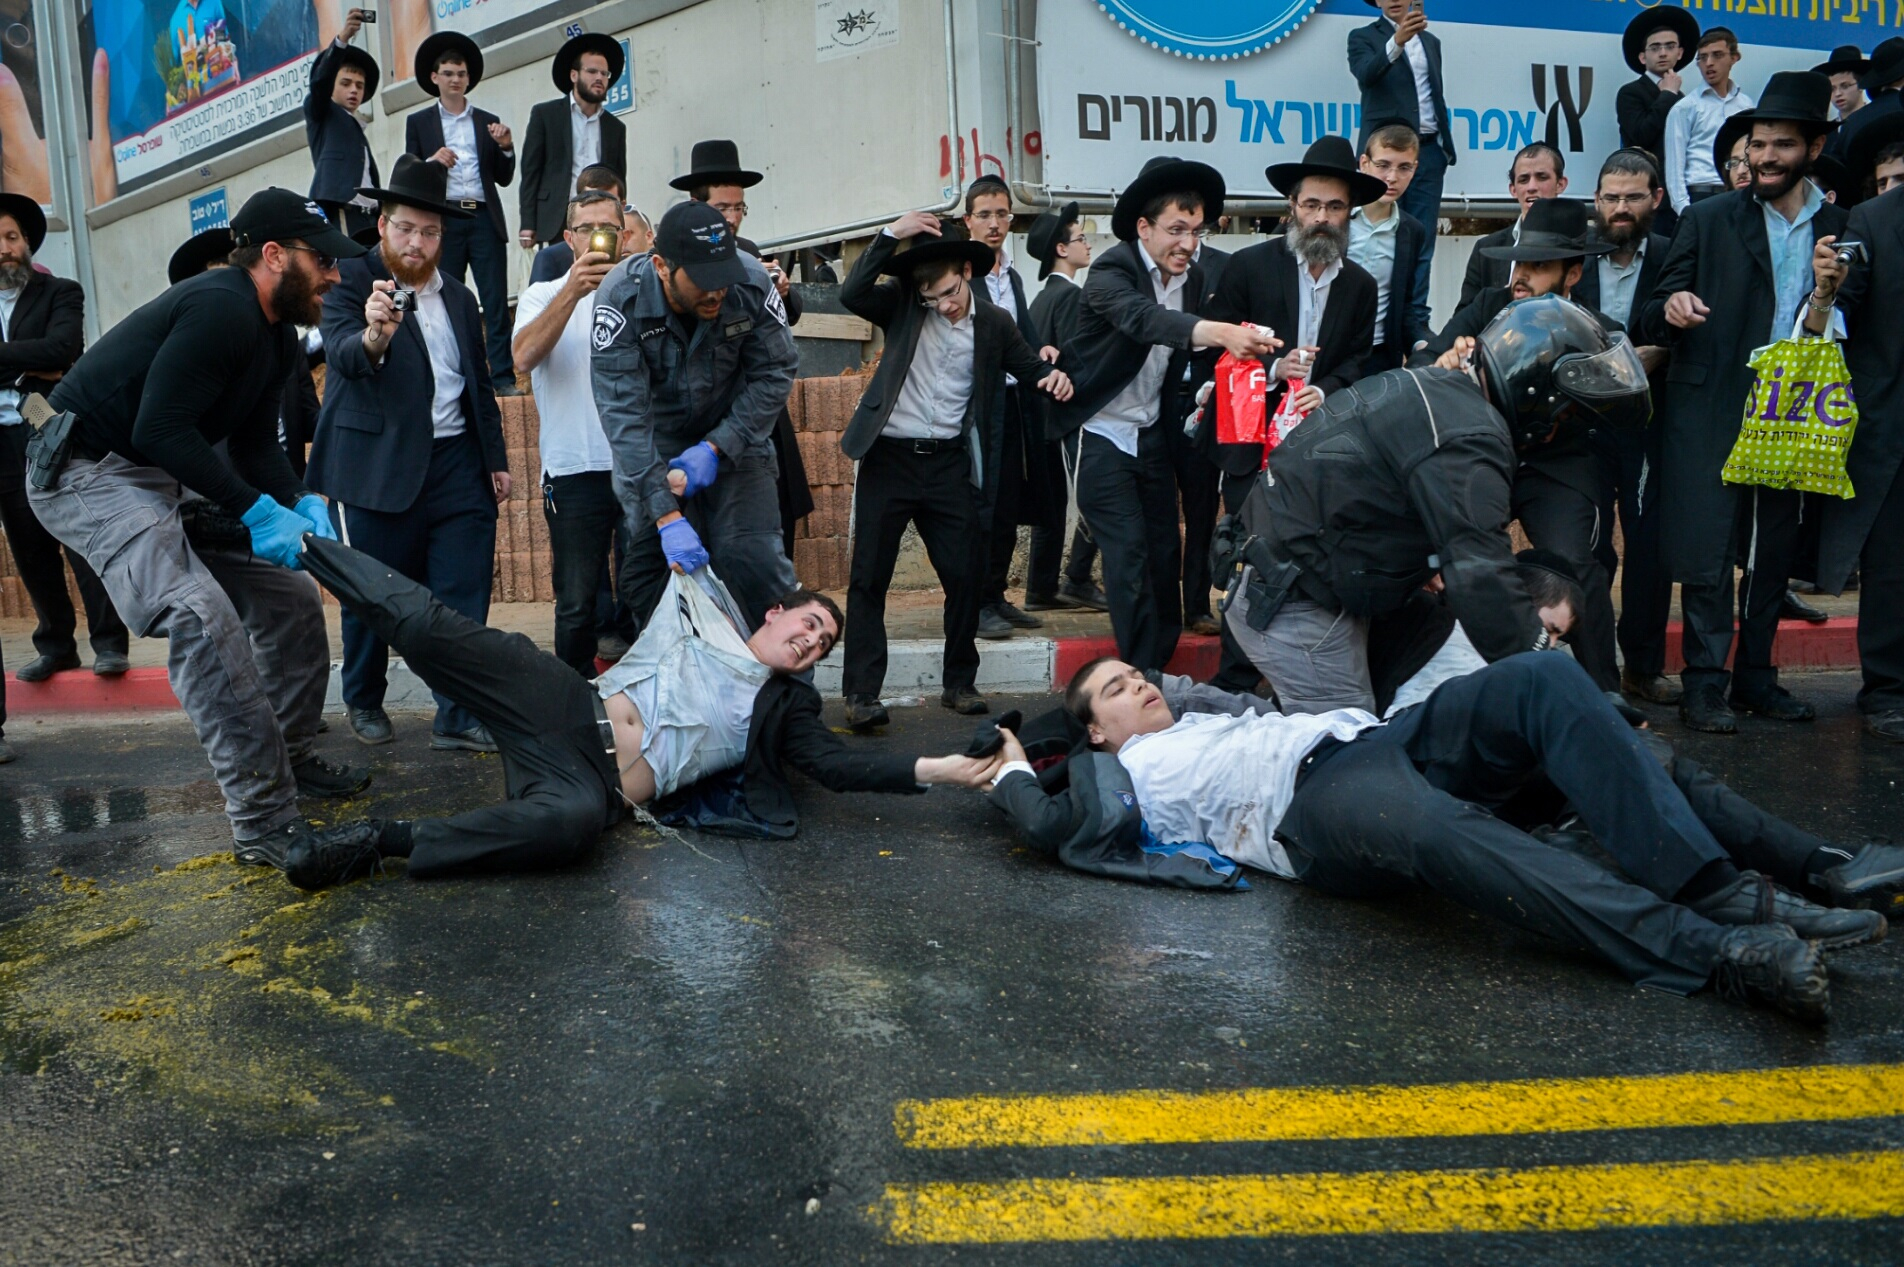 Innocent woman knocked down by Israeli 'skunk cannon' targeting ultra-Orthodox protesters